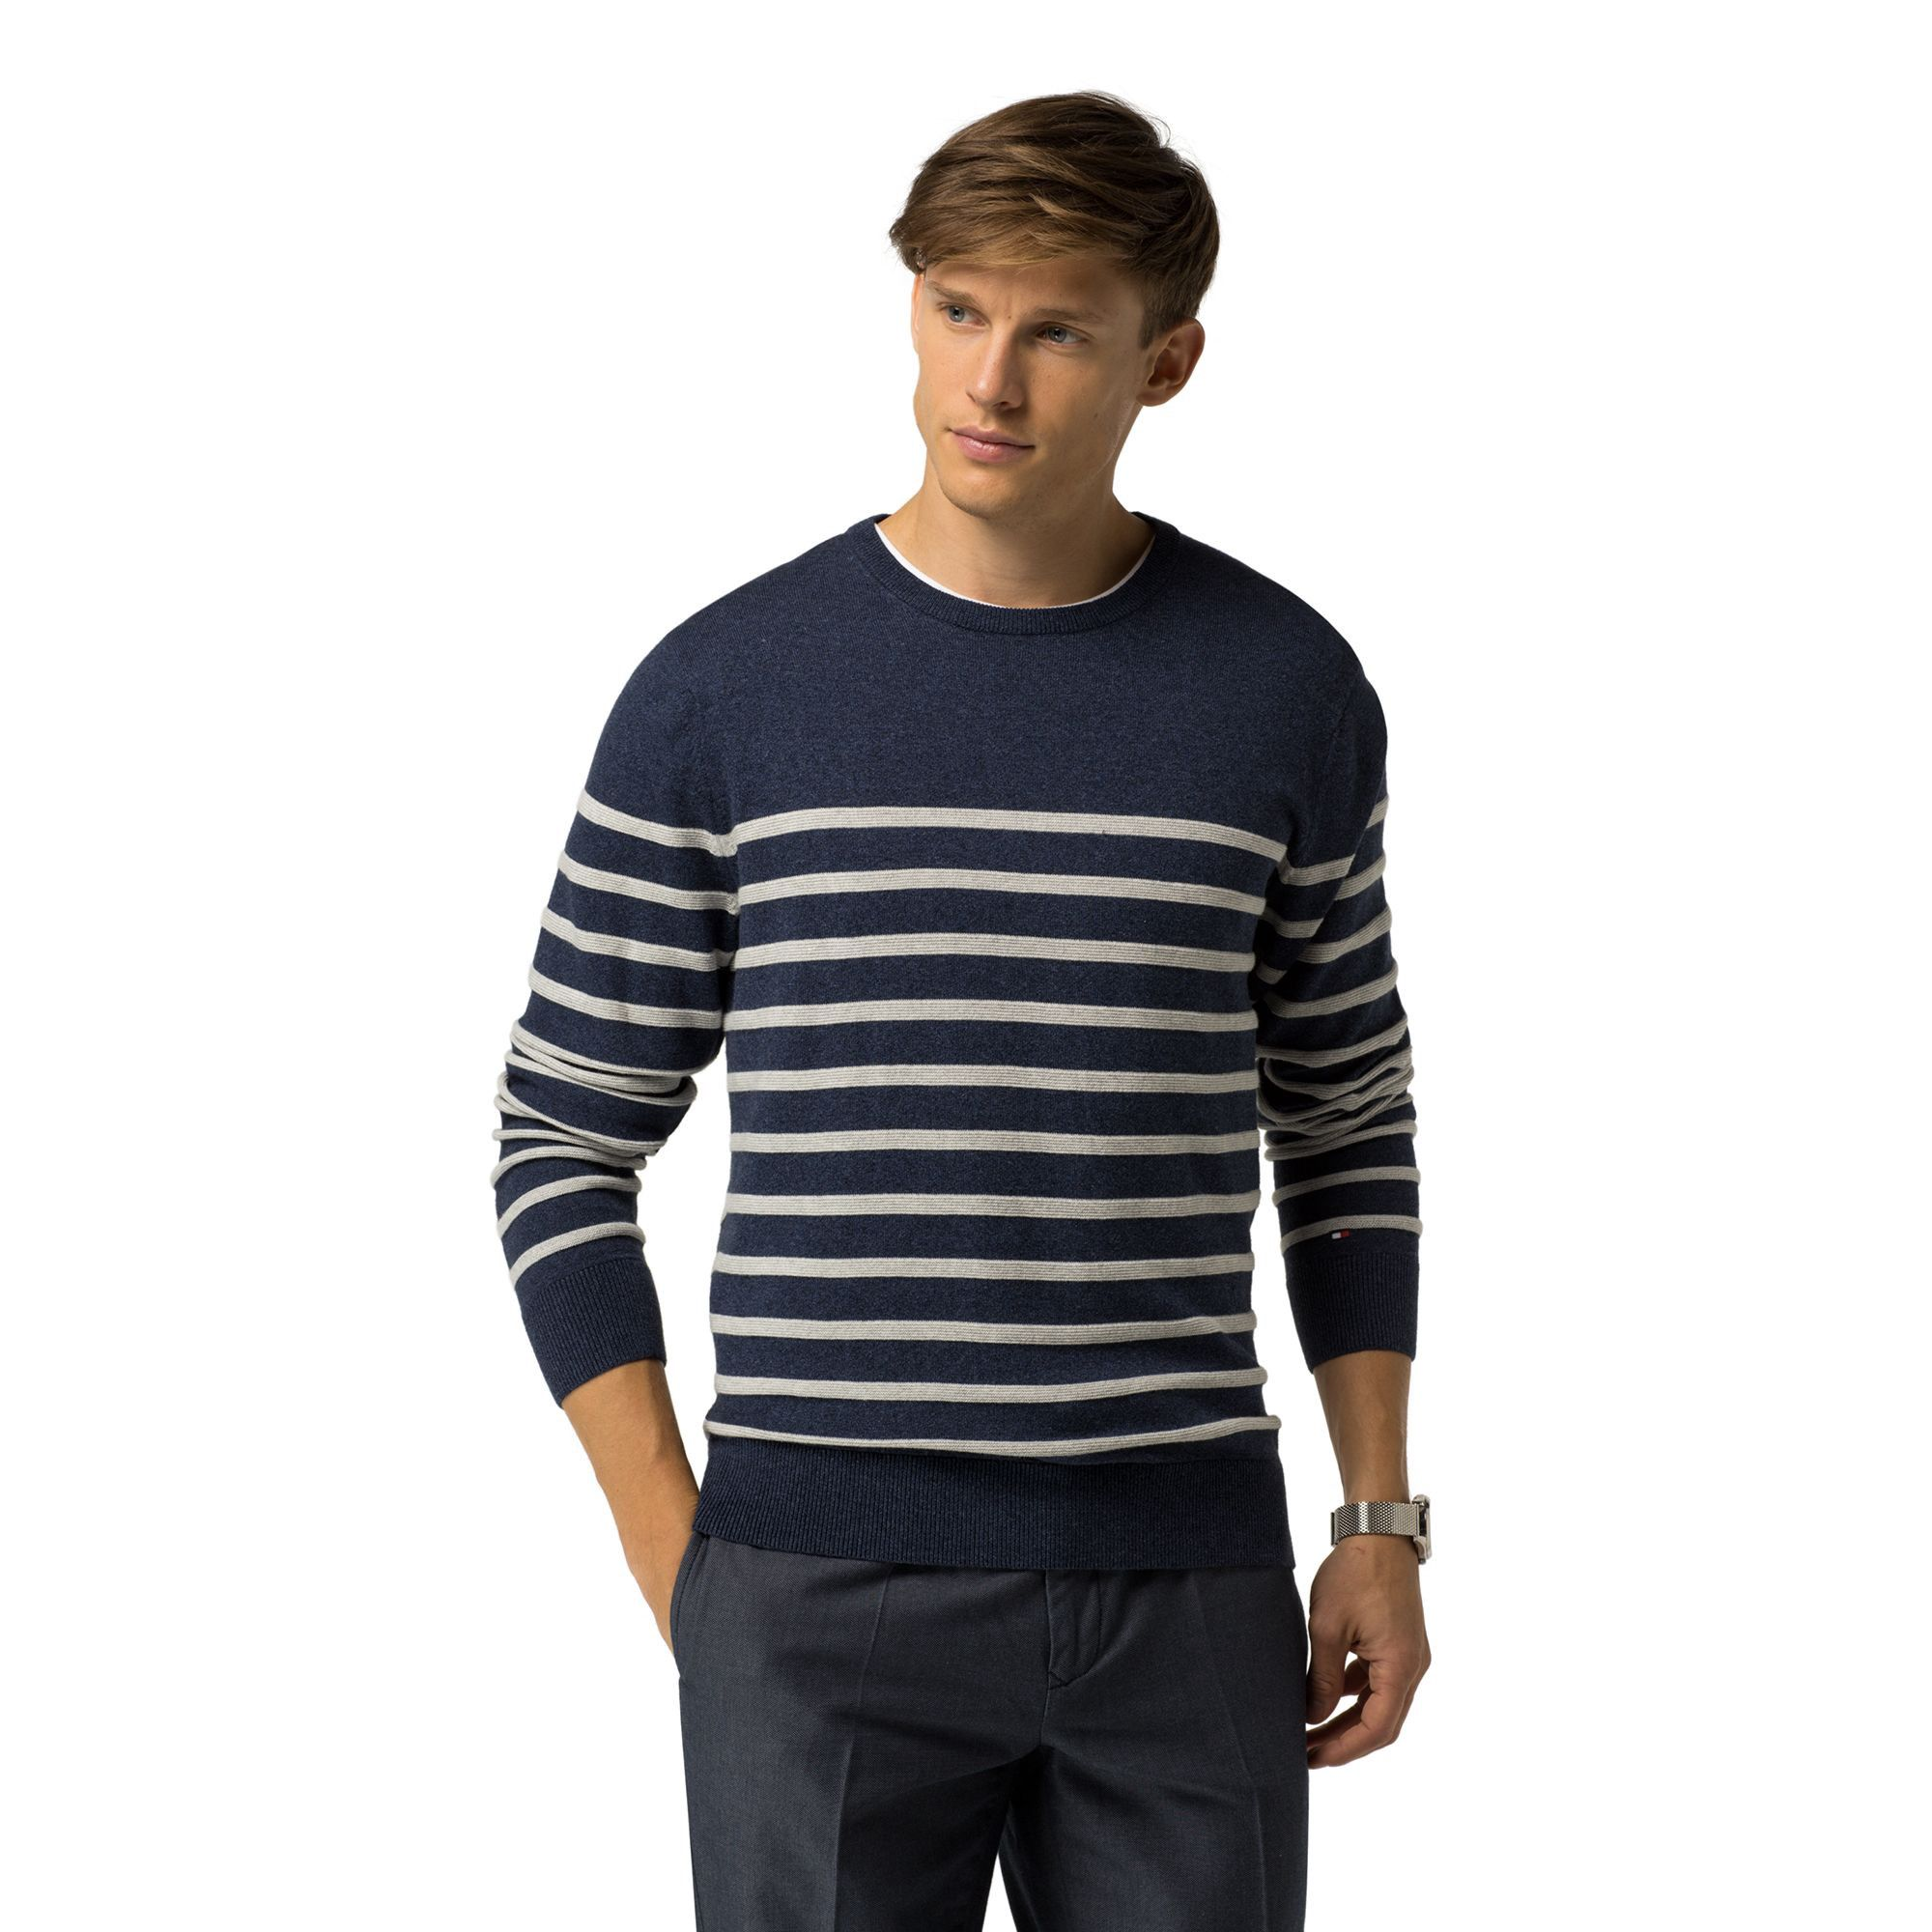 MEN/'S NAUTICA LONG SLEEVE CREWNECK SWEATER VARIETY SIZE /& COLOR! SALE NEW